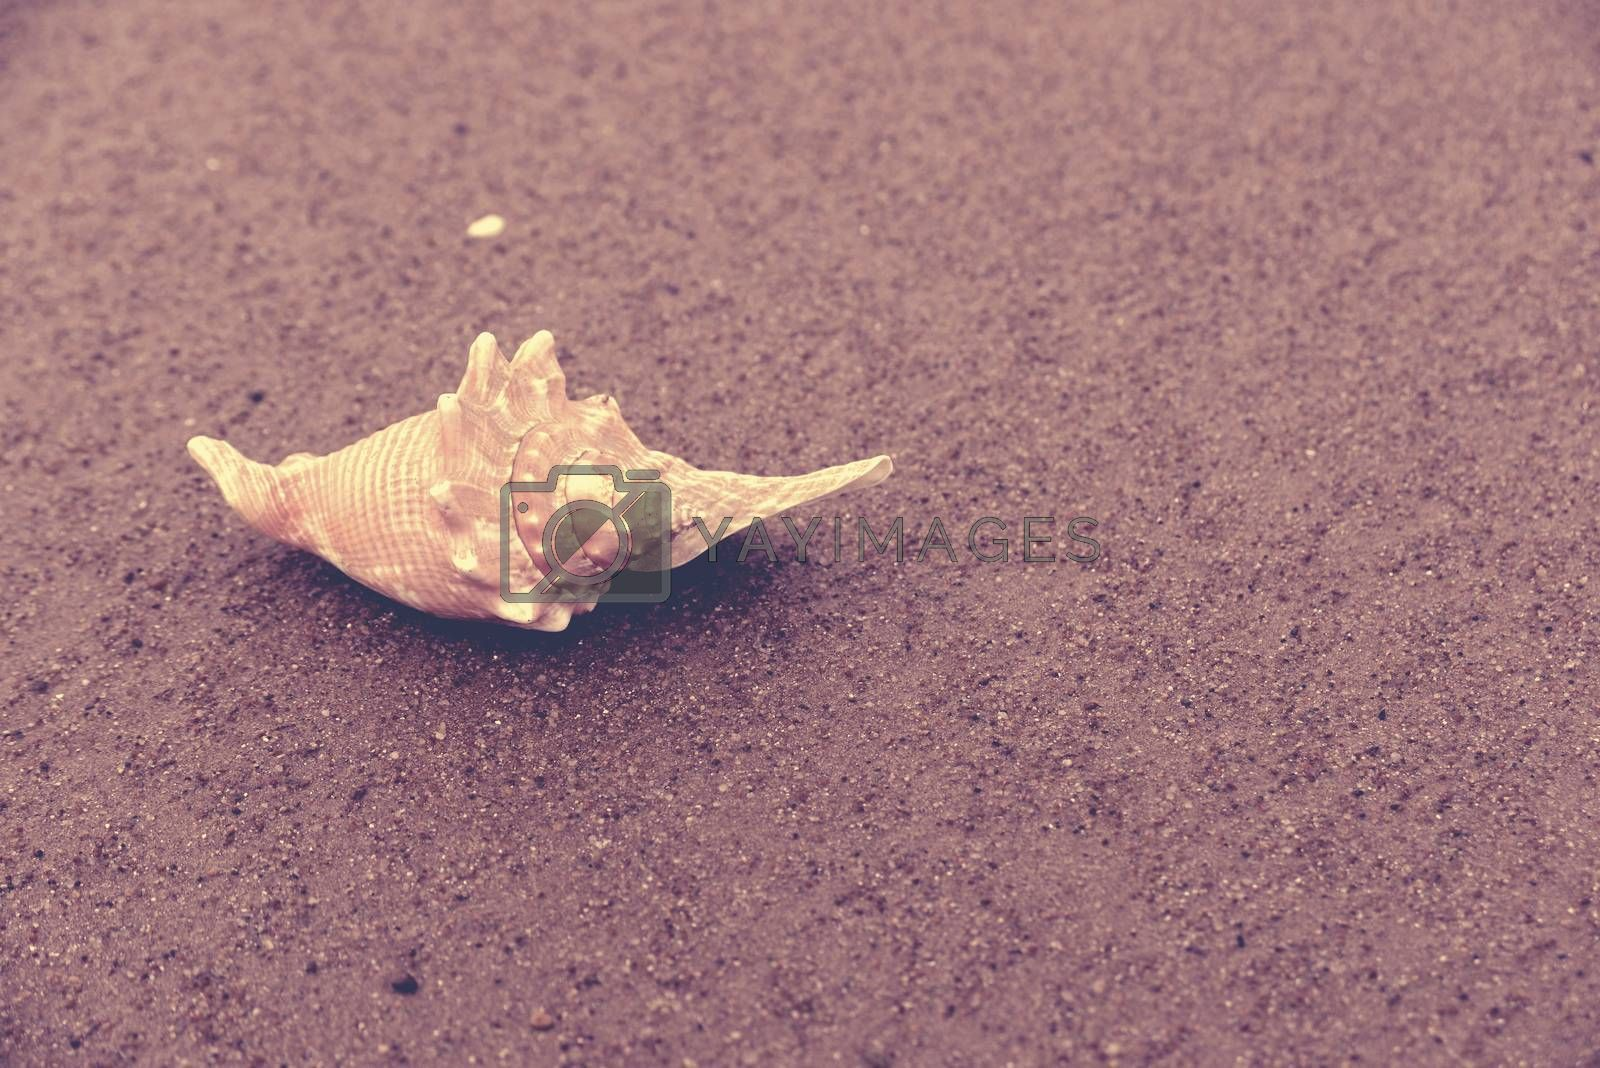 Seashell on wet sand closeup, vintage style filter effect.